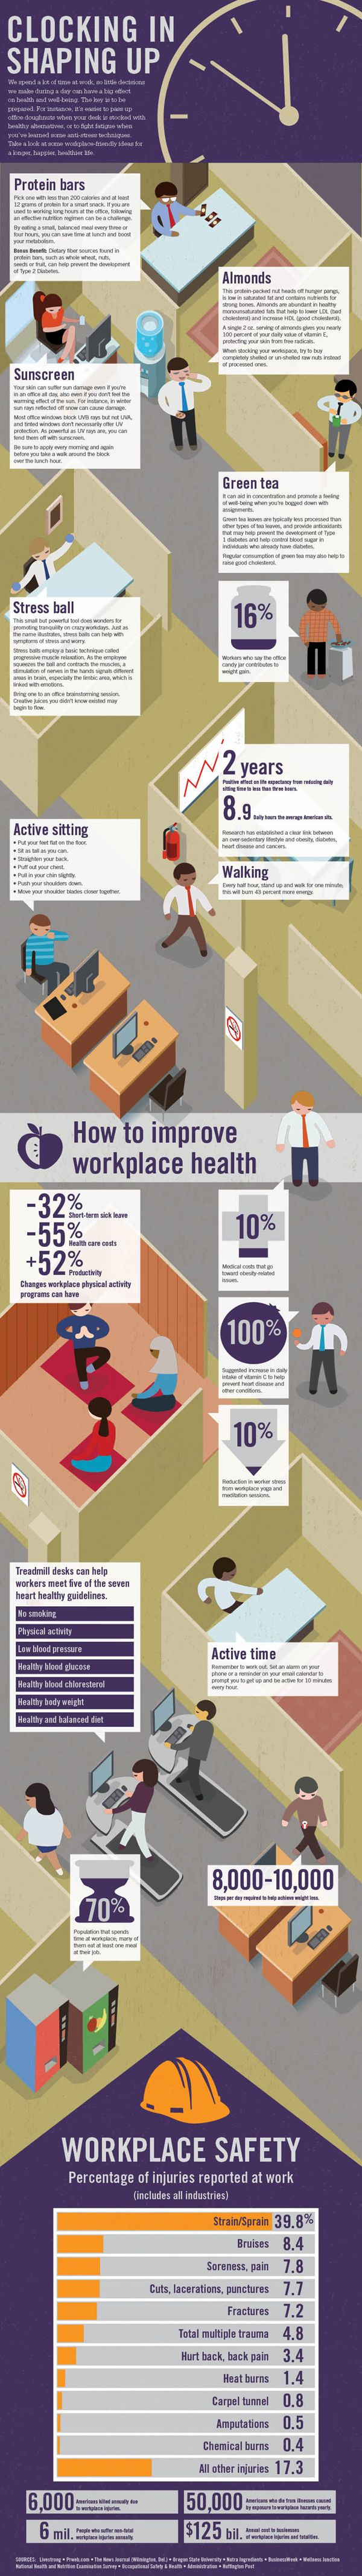 our infographic walks through some of the key health and wellness opportunities and pitfalls of the office take a look at some of the workplace friendly